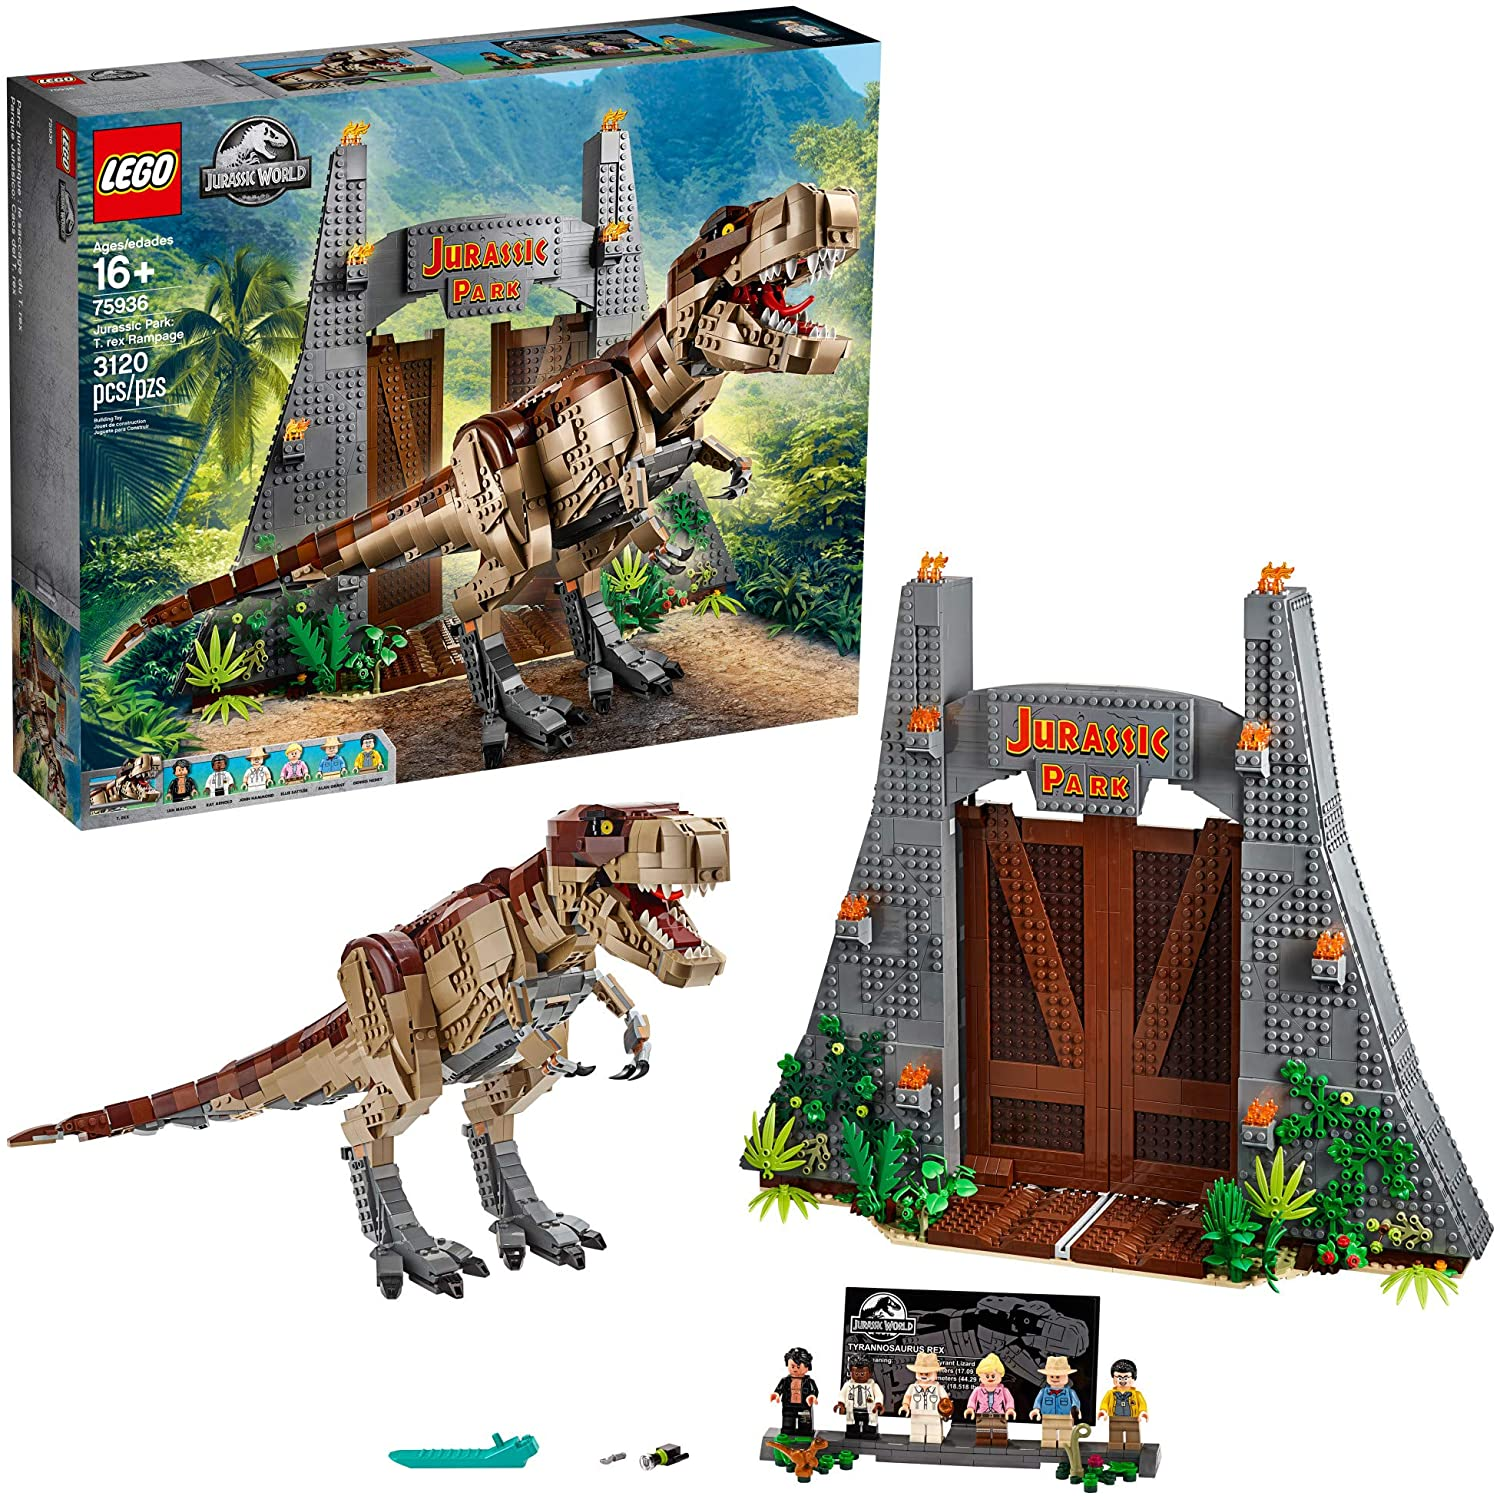 LEGO Jurassic World Jurassic Park: T. rex Rampage 75936 Building Kit, New 2020 (3120 Pieces)